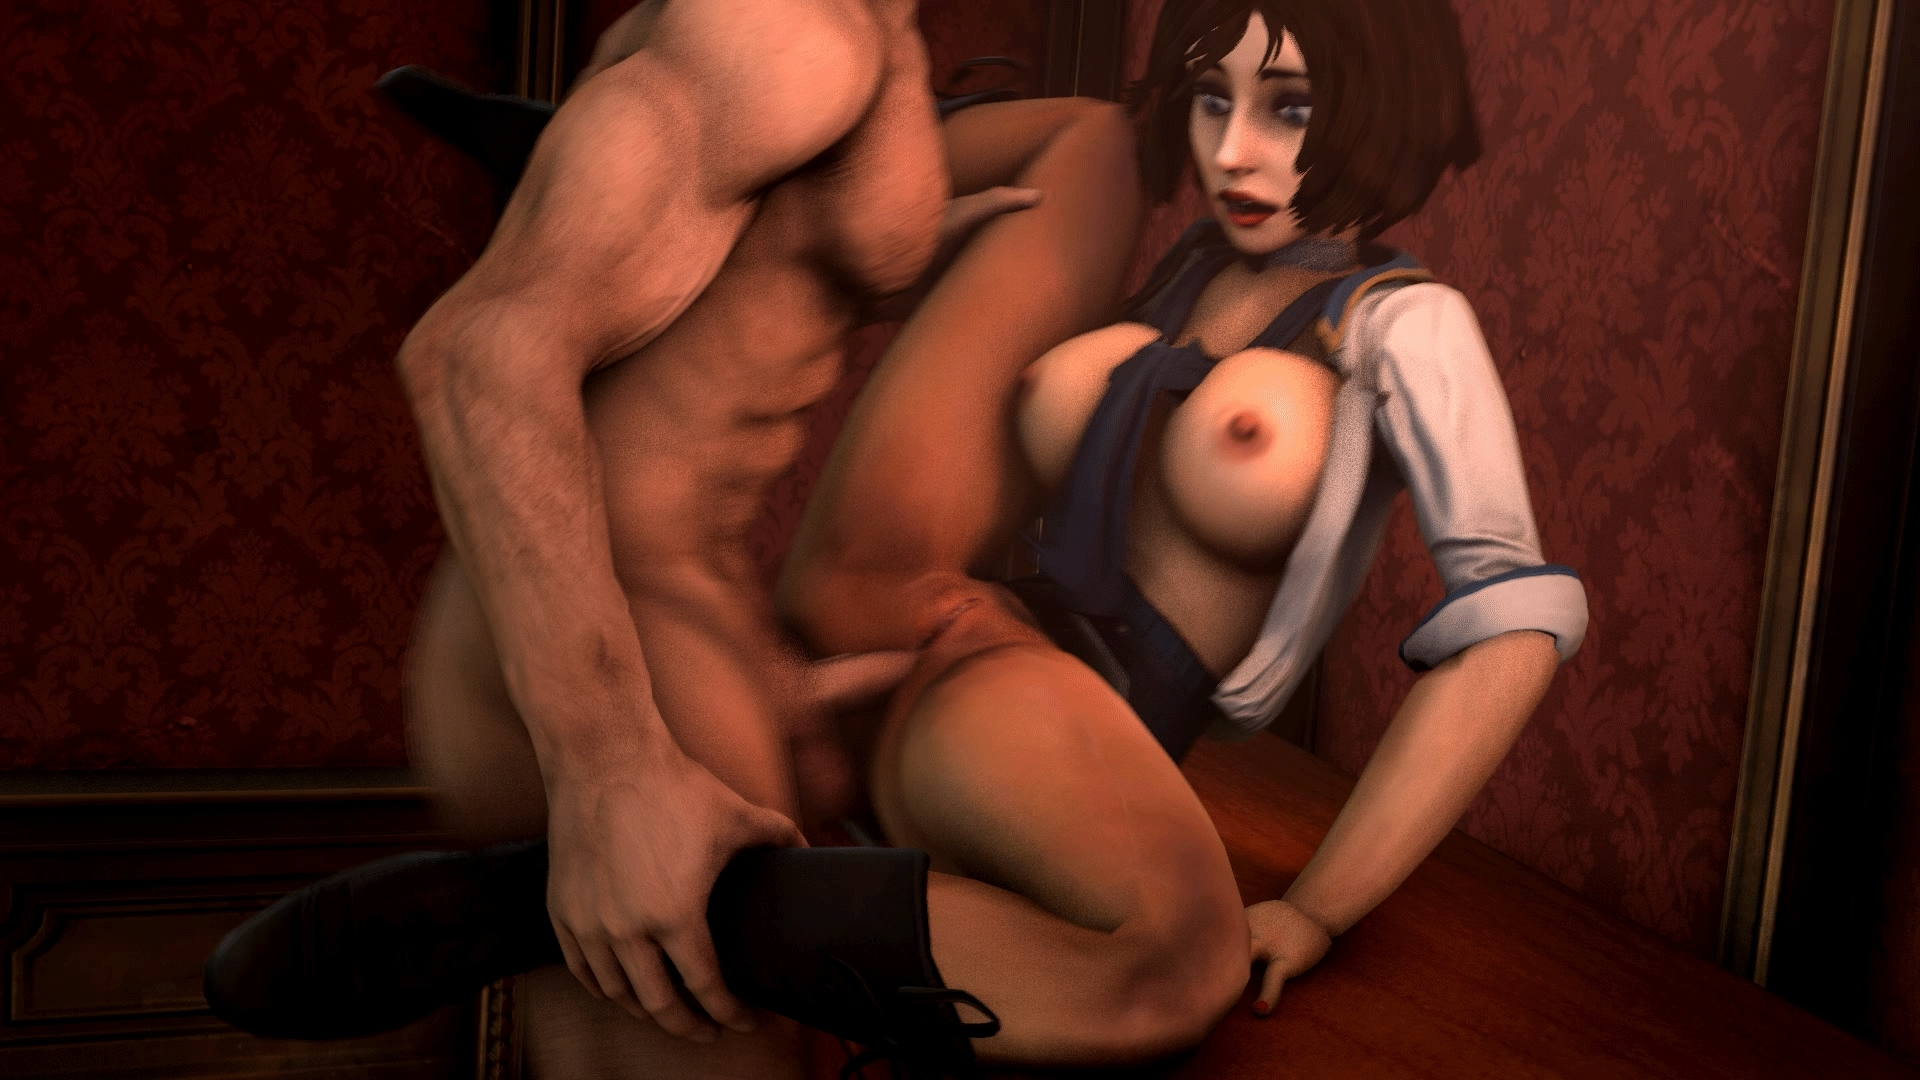 Bioshock hentai adult comic